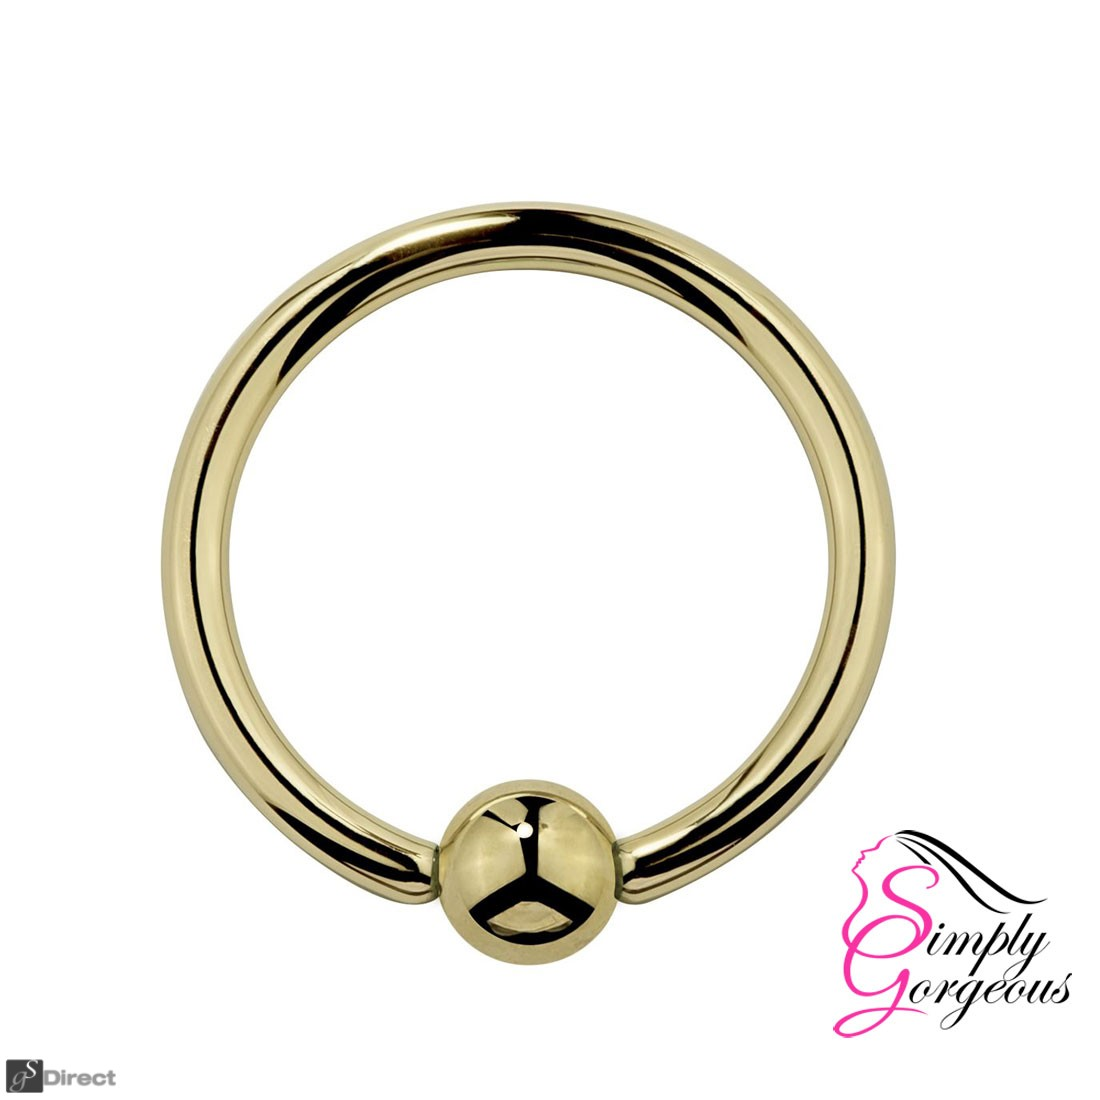 Surgical Steel Hoop Ring Piercing Ball Closure Lip Ear Nose Eyebrow - Gold